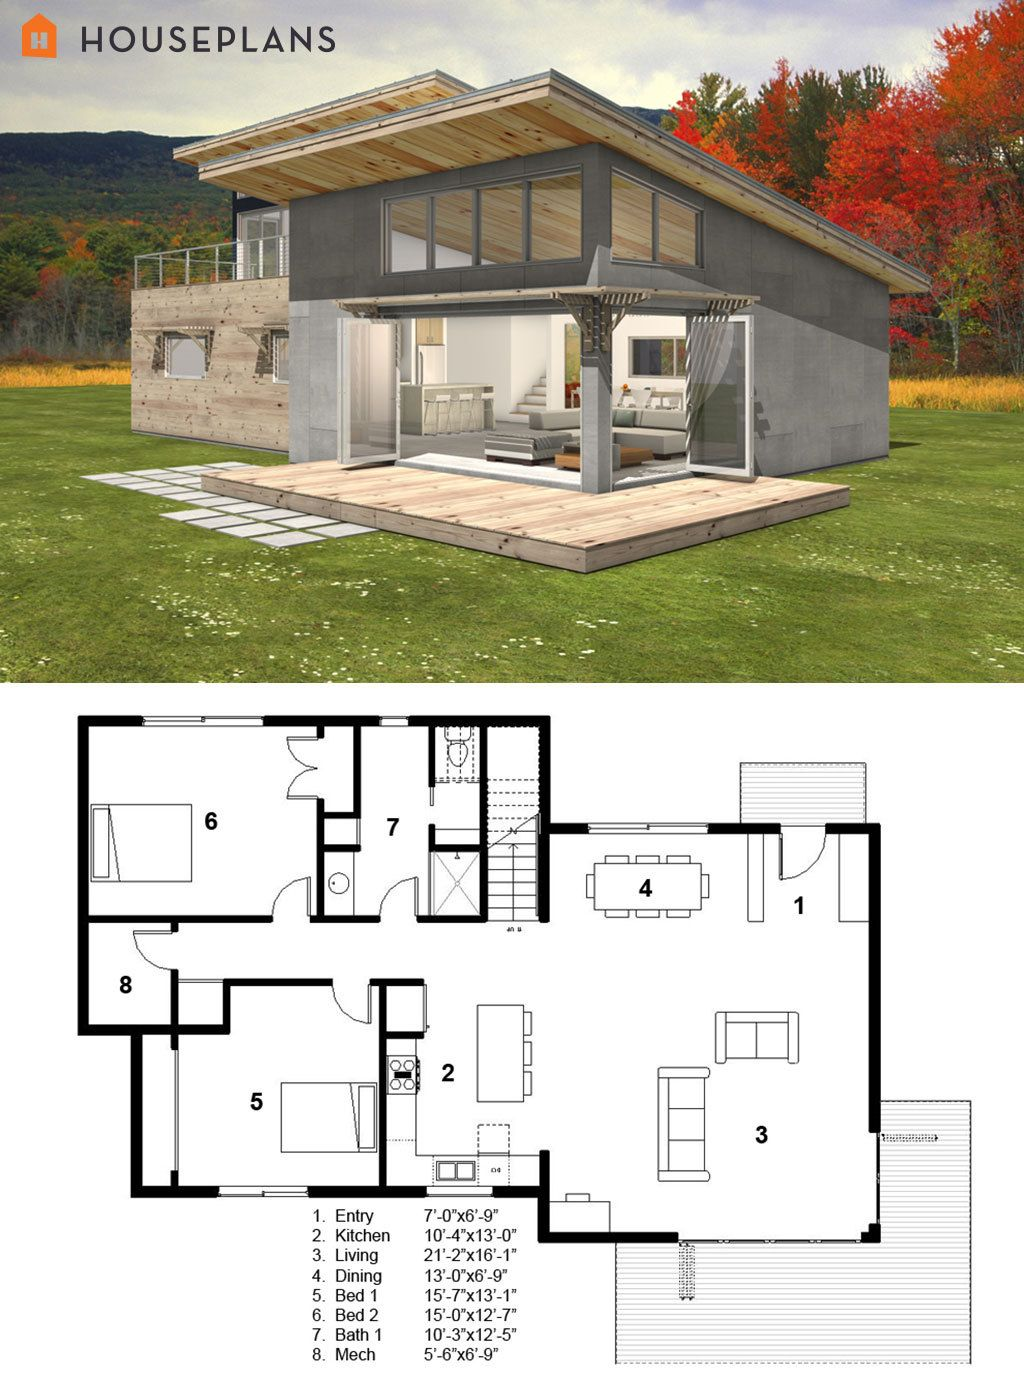 Modern style house plan 3 beds baths 2115 sq ft for Modern home design usa